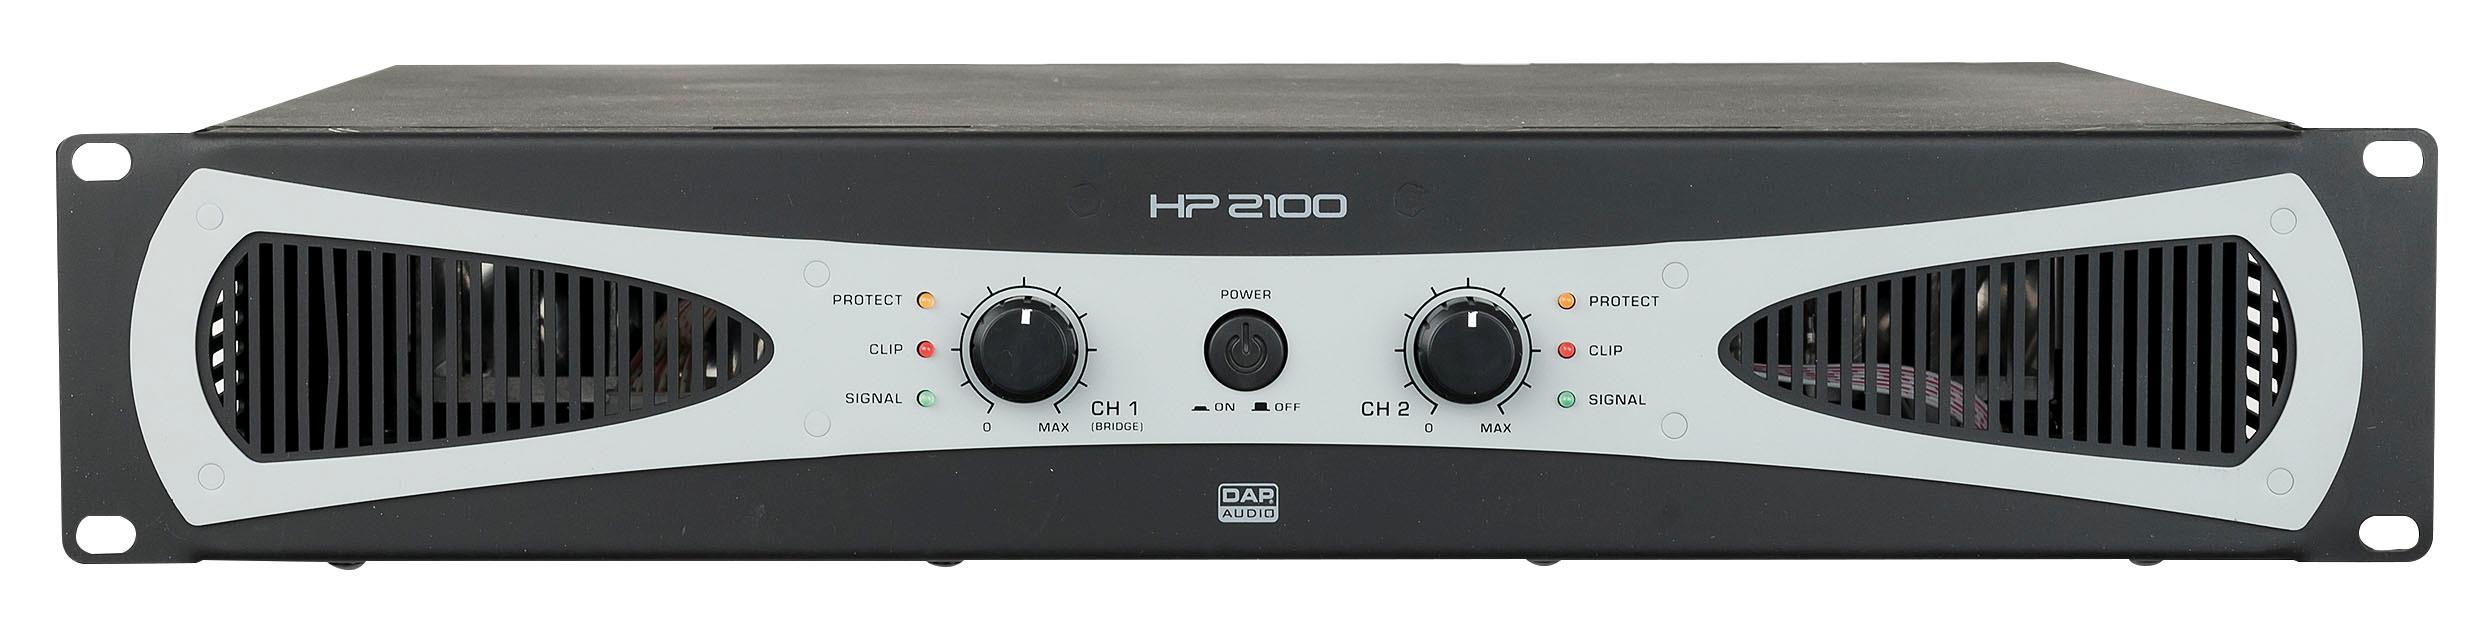 DAP HP-2100 2U 2X1000w Amplifier